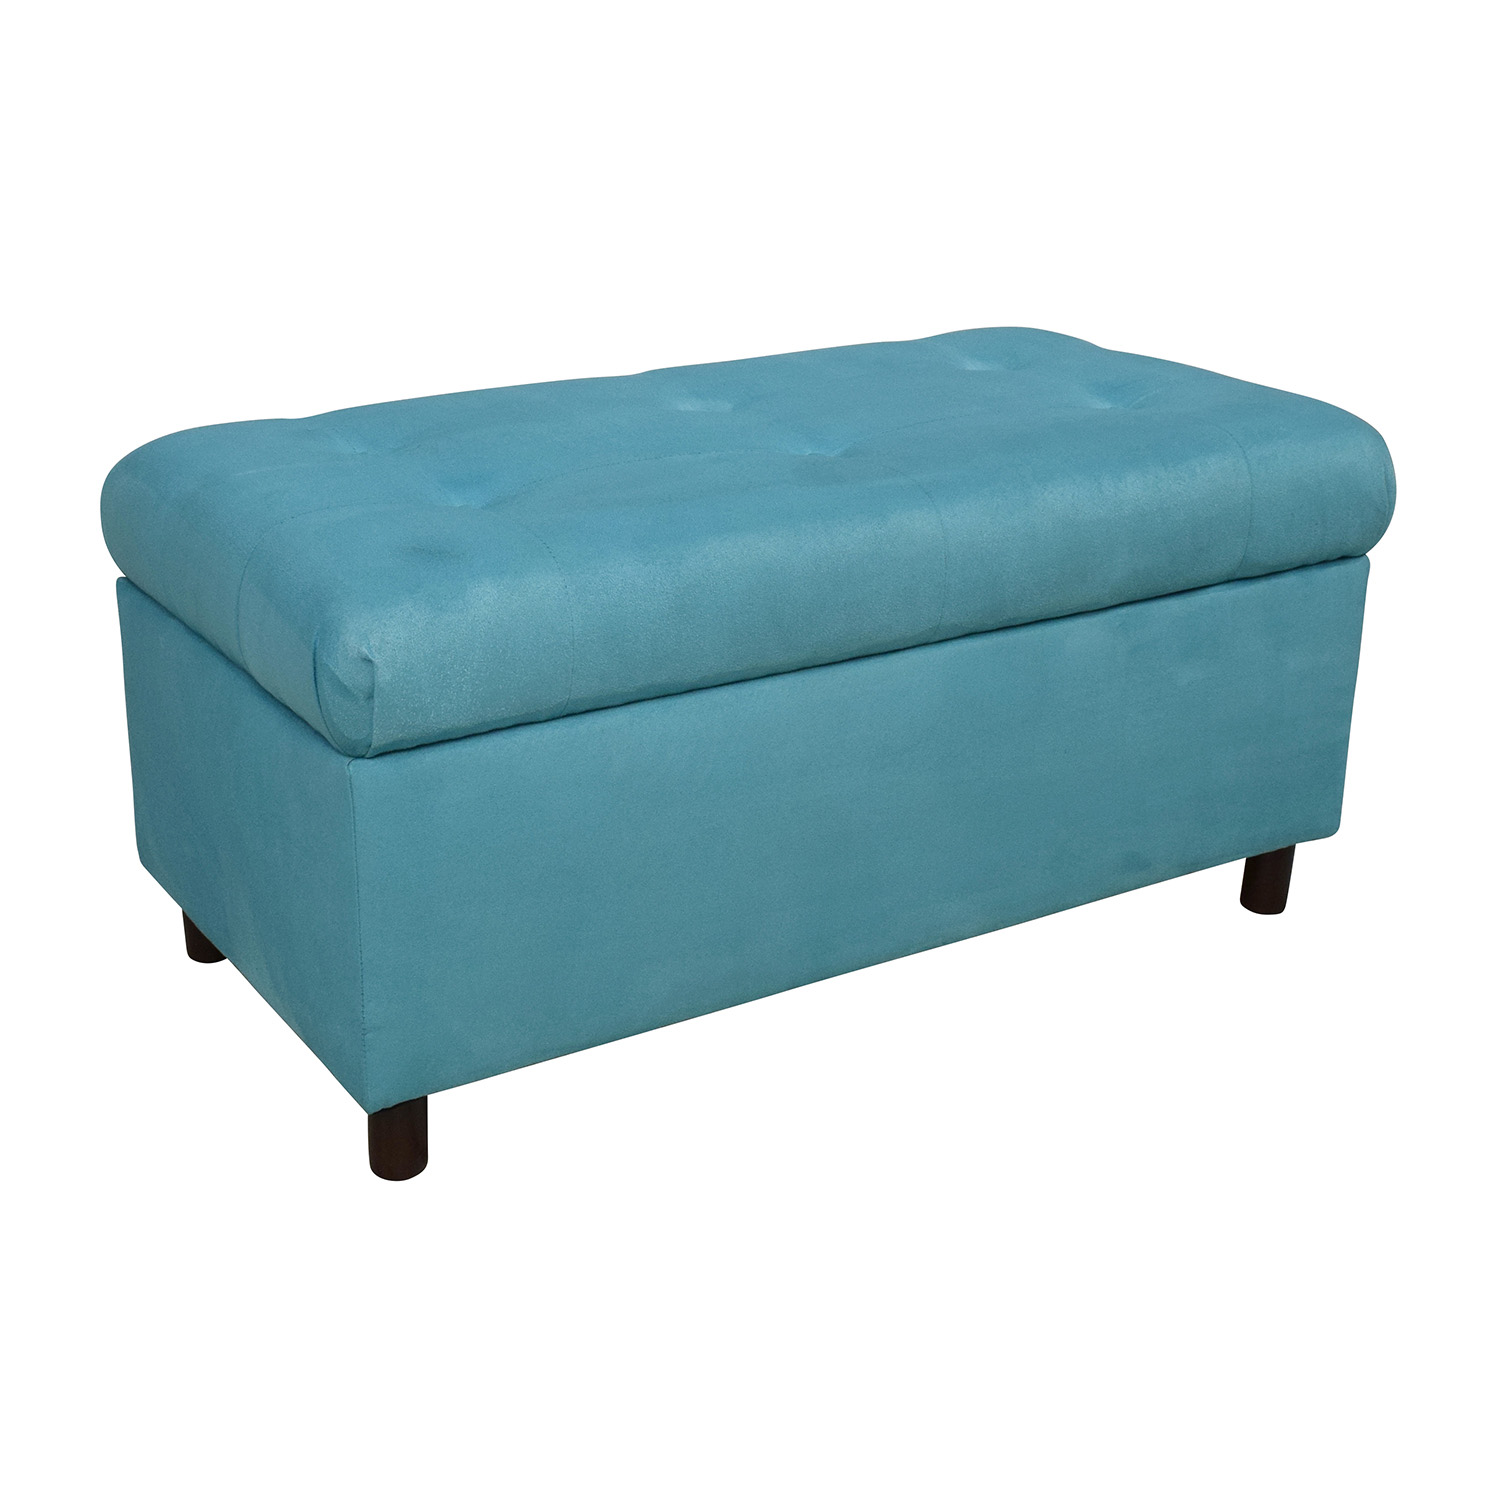 51 Off Alcott Hill Alcott Hill Bretton Tufted Top Bench Storage Ottoman Storage